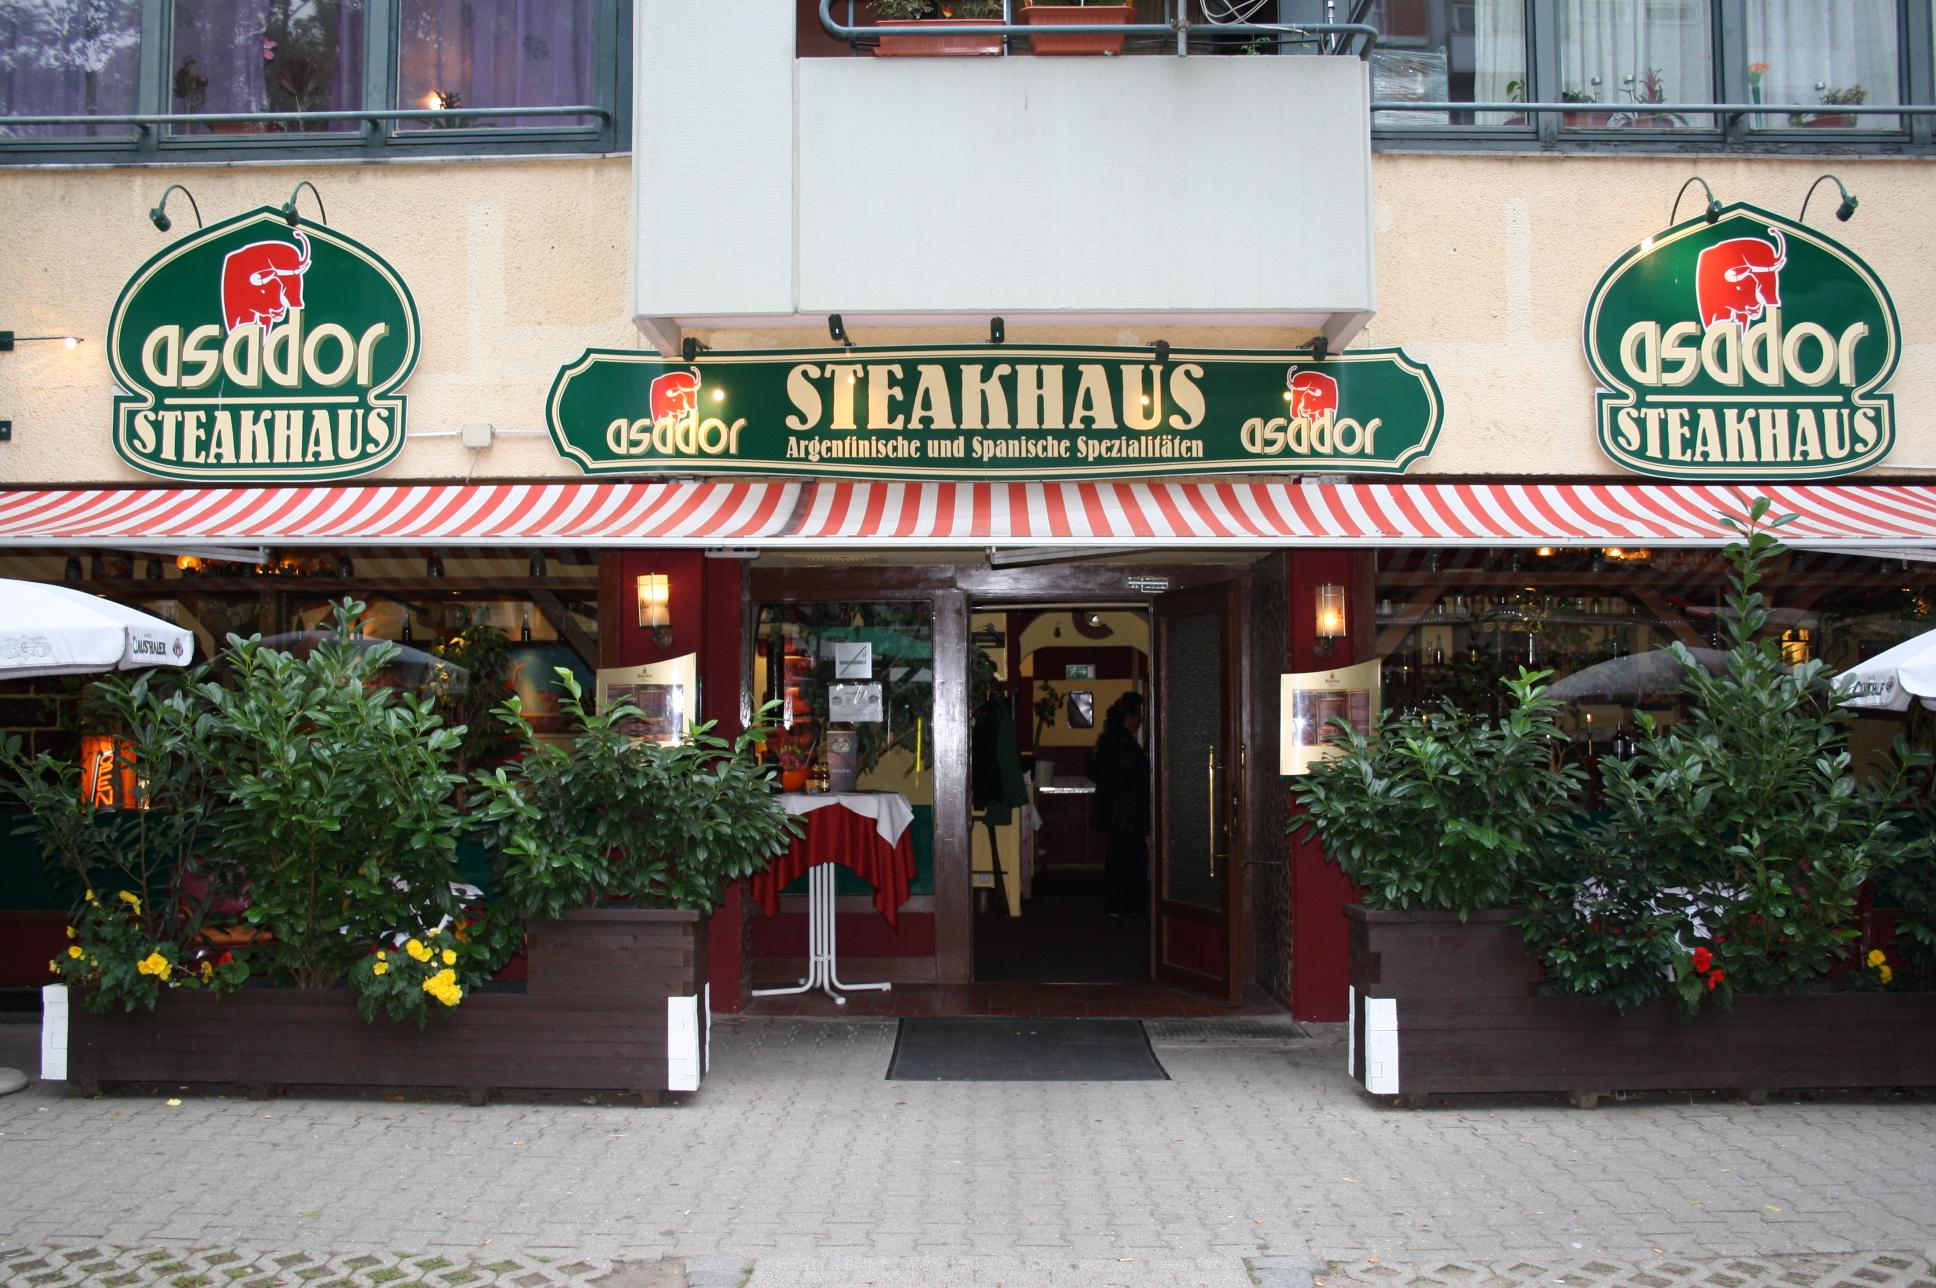 Gehobene Gastronomie Berlin Steakhouse Asador Steak Restaurants Top10berlin